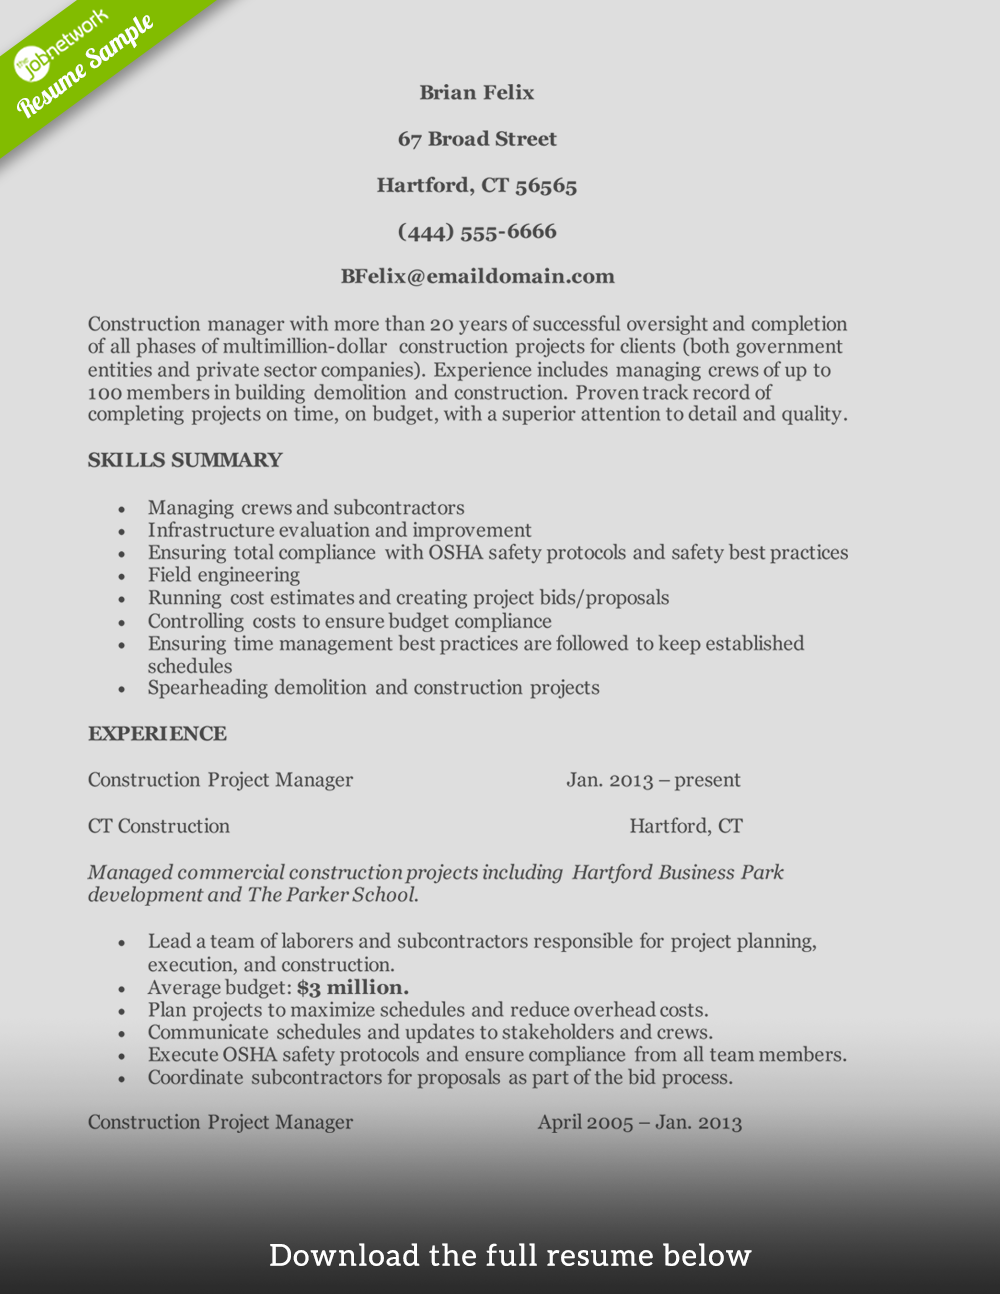 How to Write a Perfect Construction Resume (Examples Included)